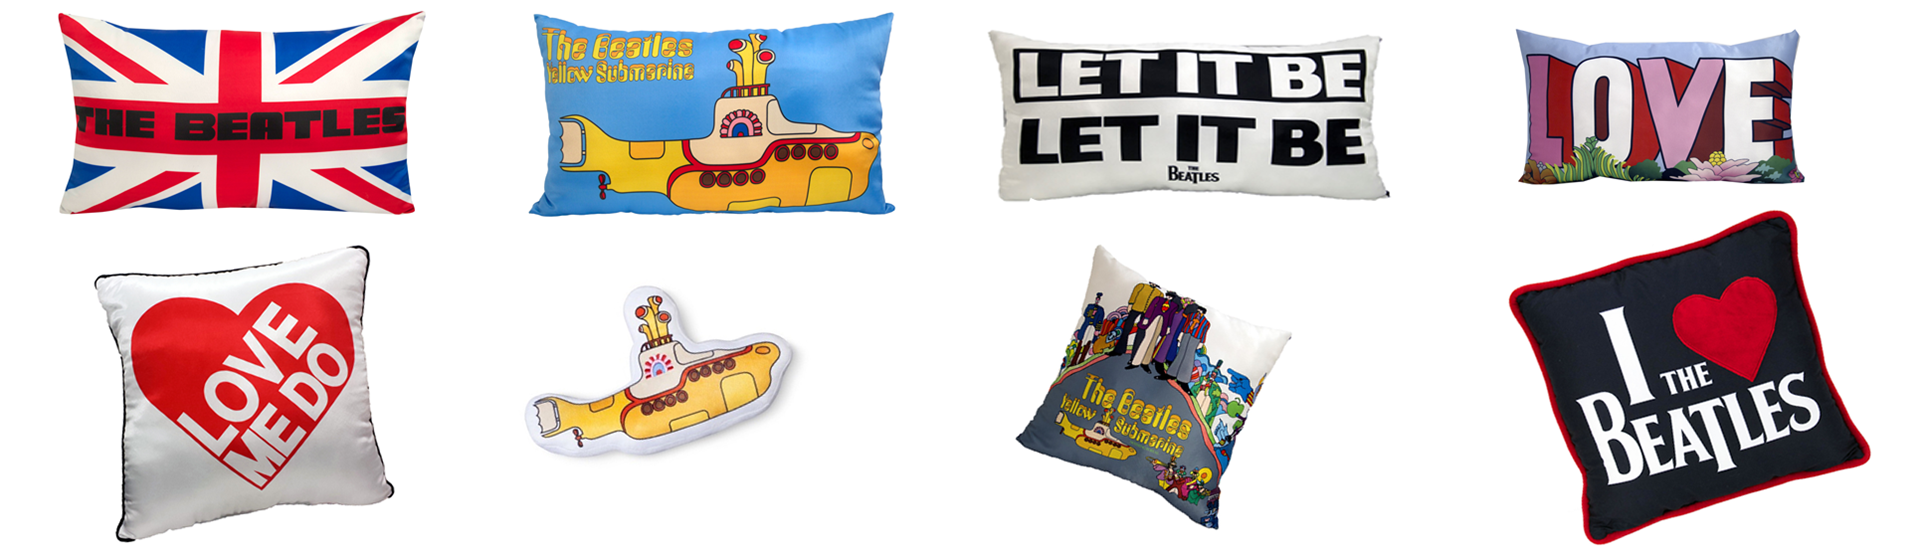 Beatles Pillows